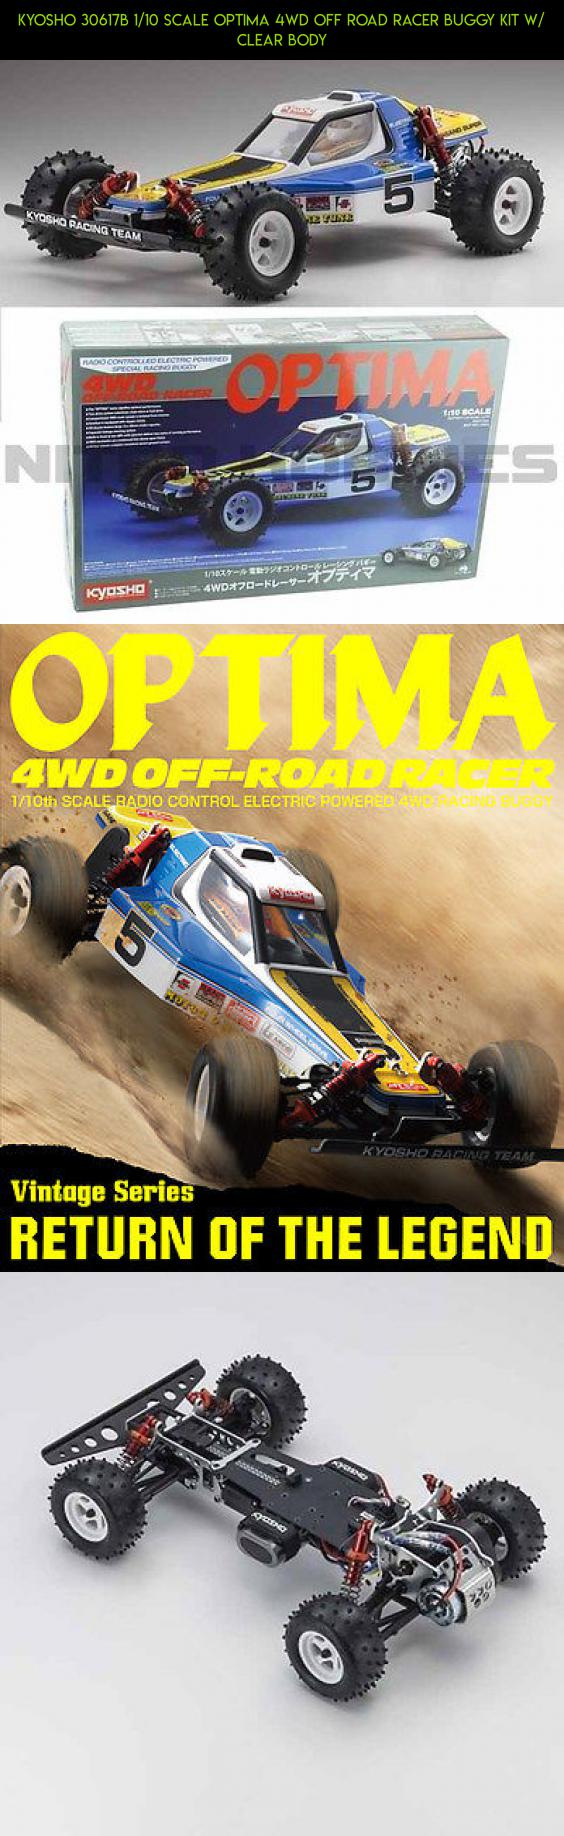 kyosho 30617b 1 10 scale optima 4wd off road racer buggy kit w rh pinterest com